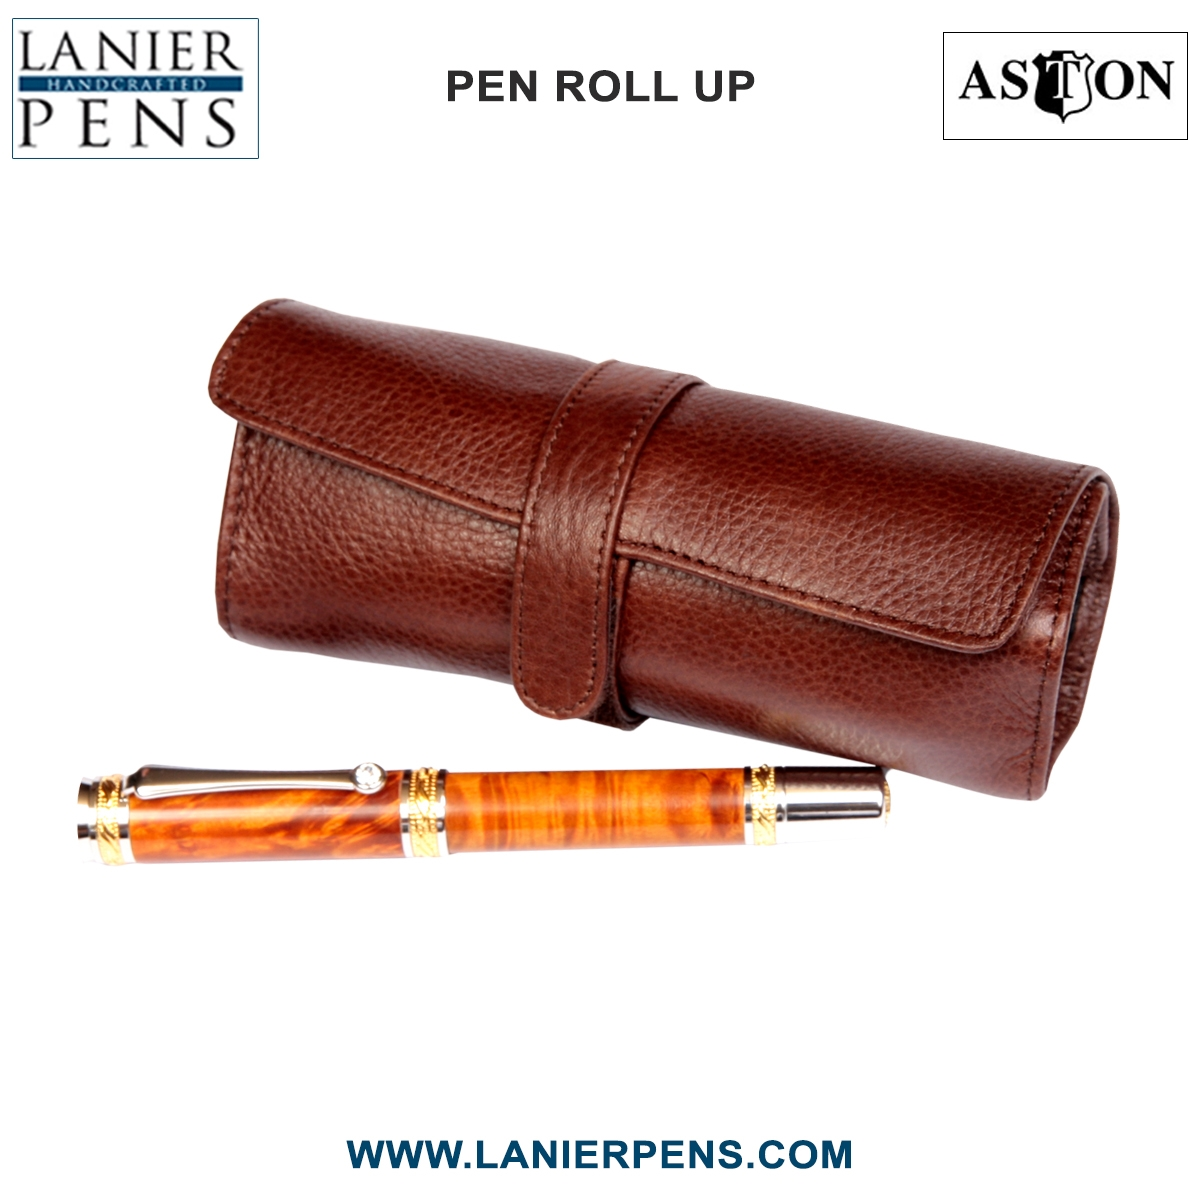 Aston Leather Roll Up Pen Case Luggage Accessory - 5 Pen Holder Roll Up Brown Case